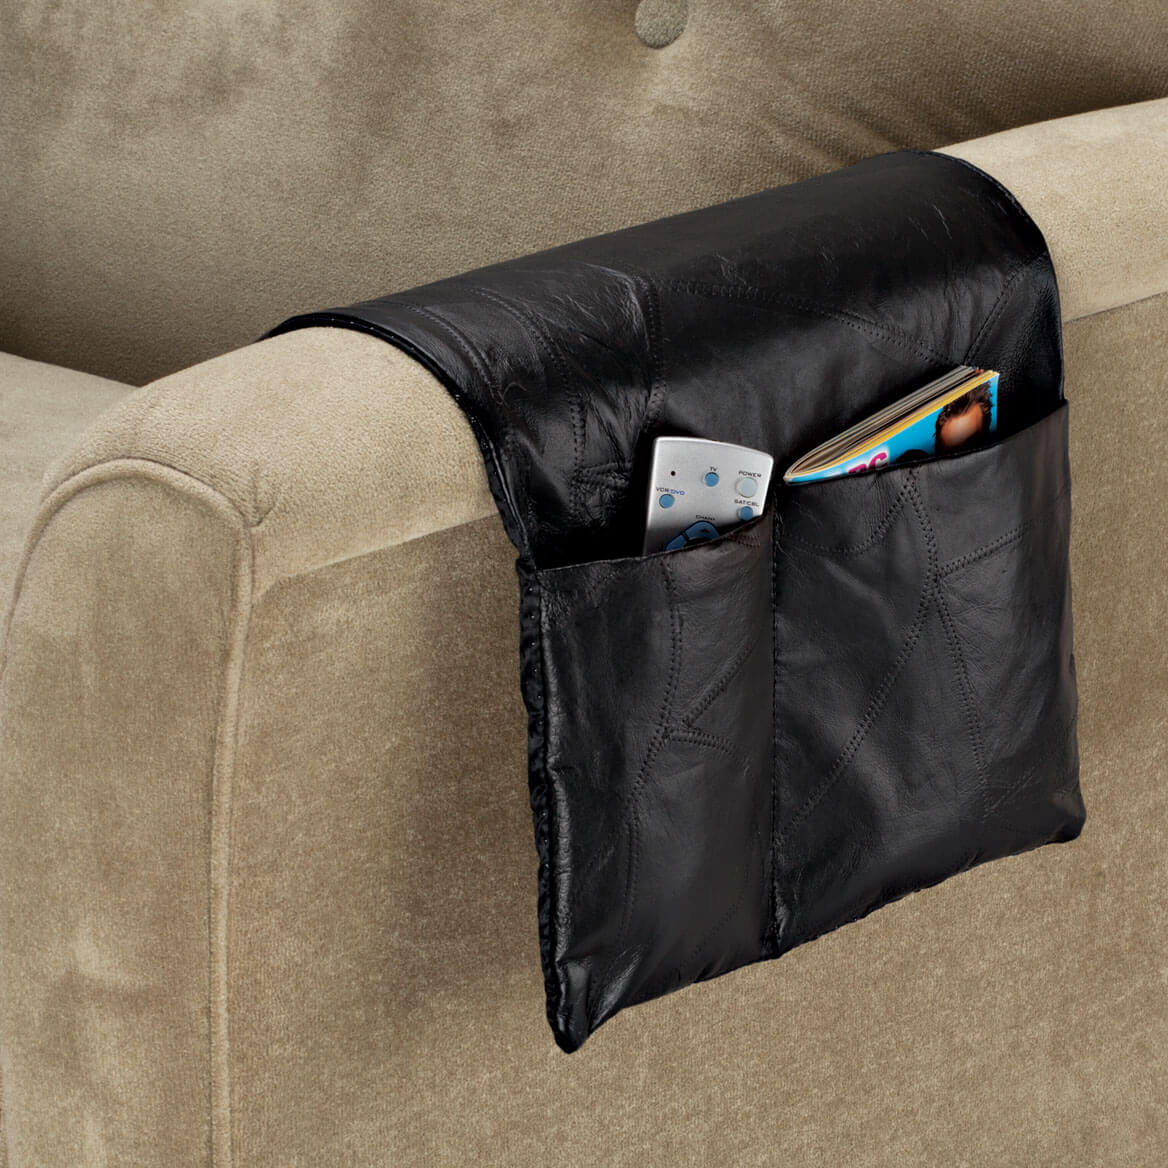 Sofa Arm Organizer Tray Leather Armchair Caddy